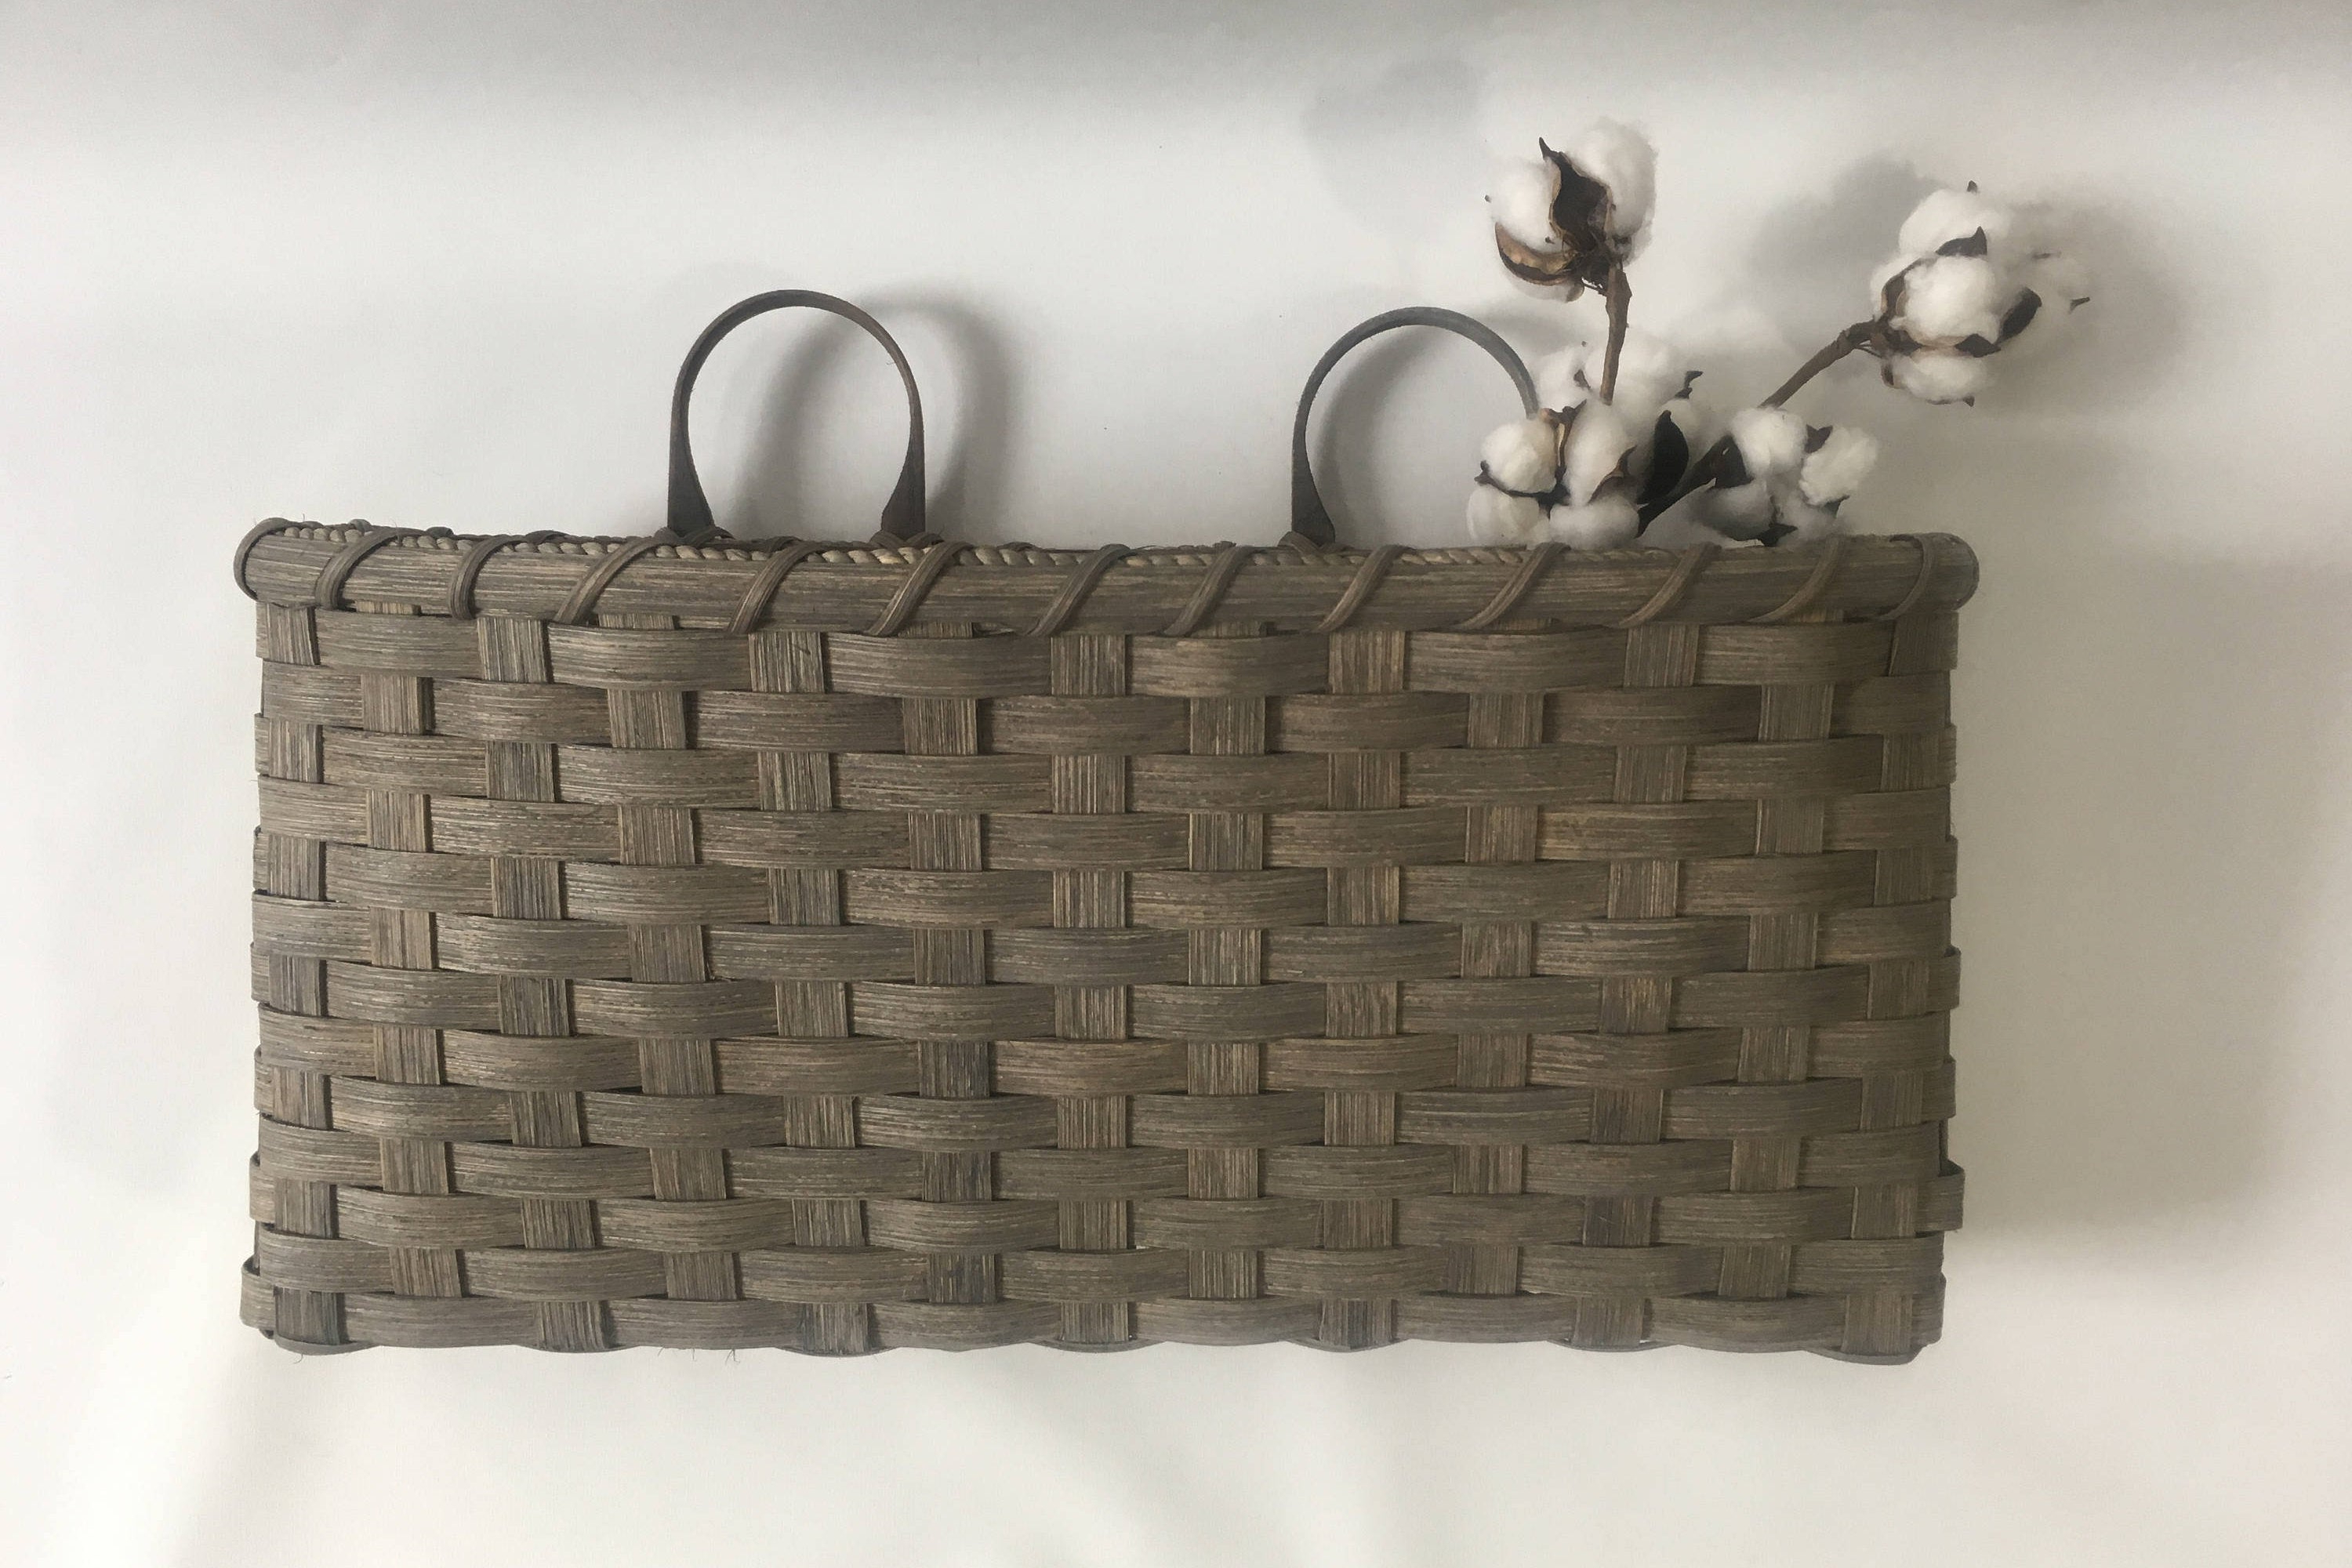 4 Piece Handwoven Wheel Wall Decor Sets With Most Recent Large Wall Basket Wall Decor Handwoven Basket (Gallery 10 of 20)